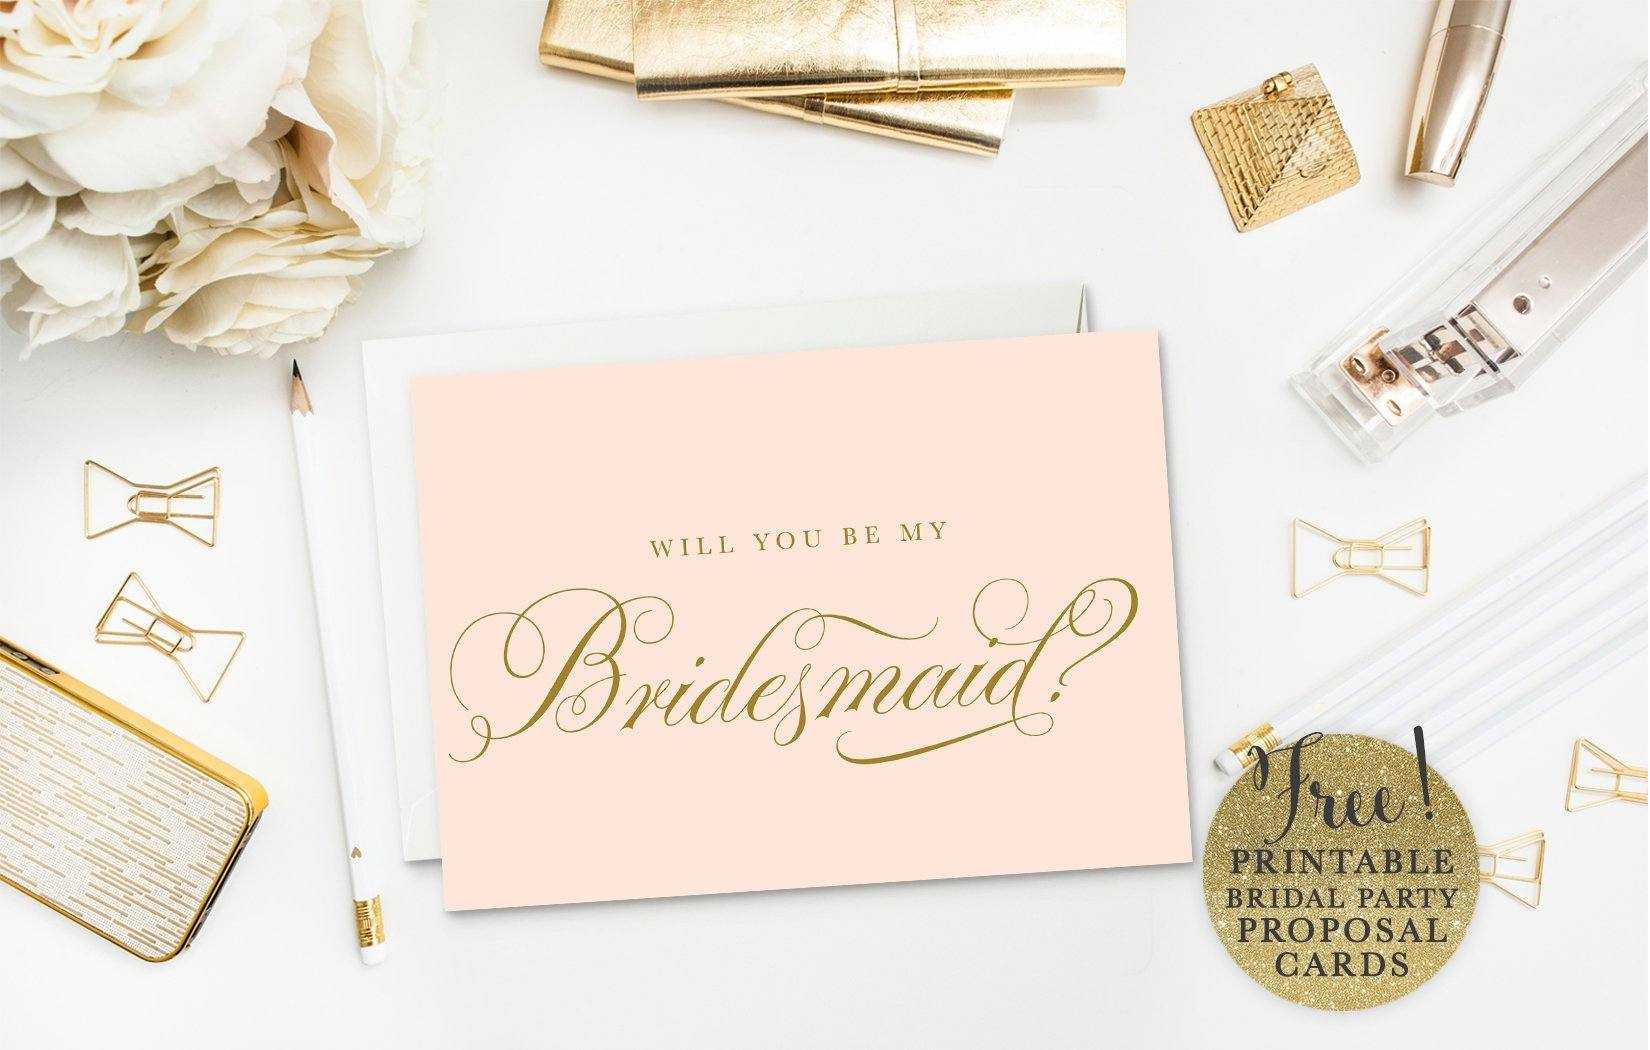 10 Will You Be My Bridesmaid? Cards (Free & Printable) Pertaining To Will You Be My Bridesmaid Card Template